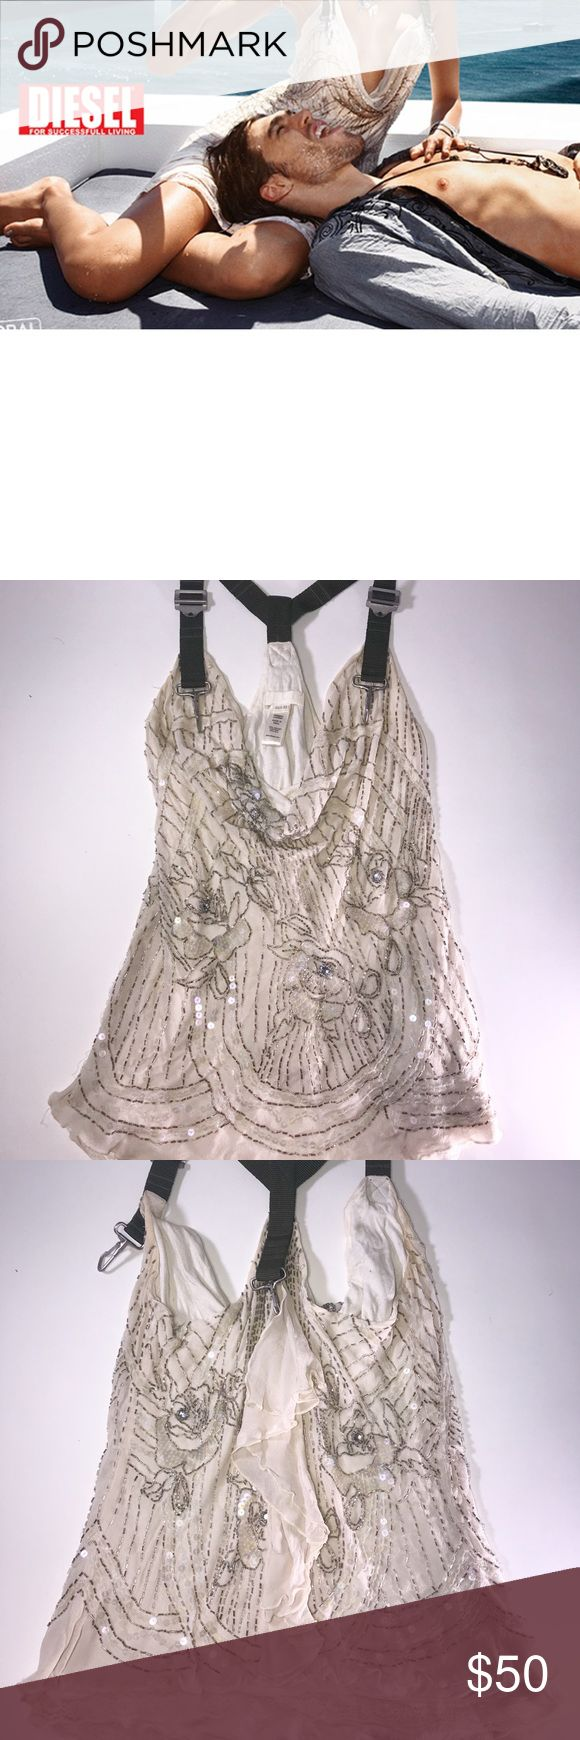 Diesel Silk Beaded Top This silk beaded Diesel top is so special and gorgeous. A few little beads missing (see photo) otherwise in great condition! Wear with jean shorts and sandals. Size XS Diesel Tops Tunics